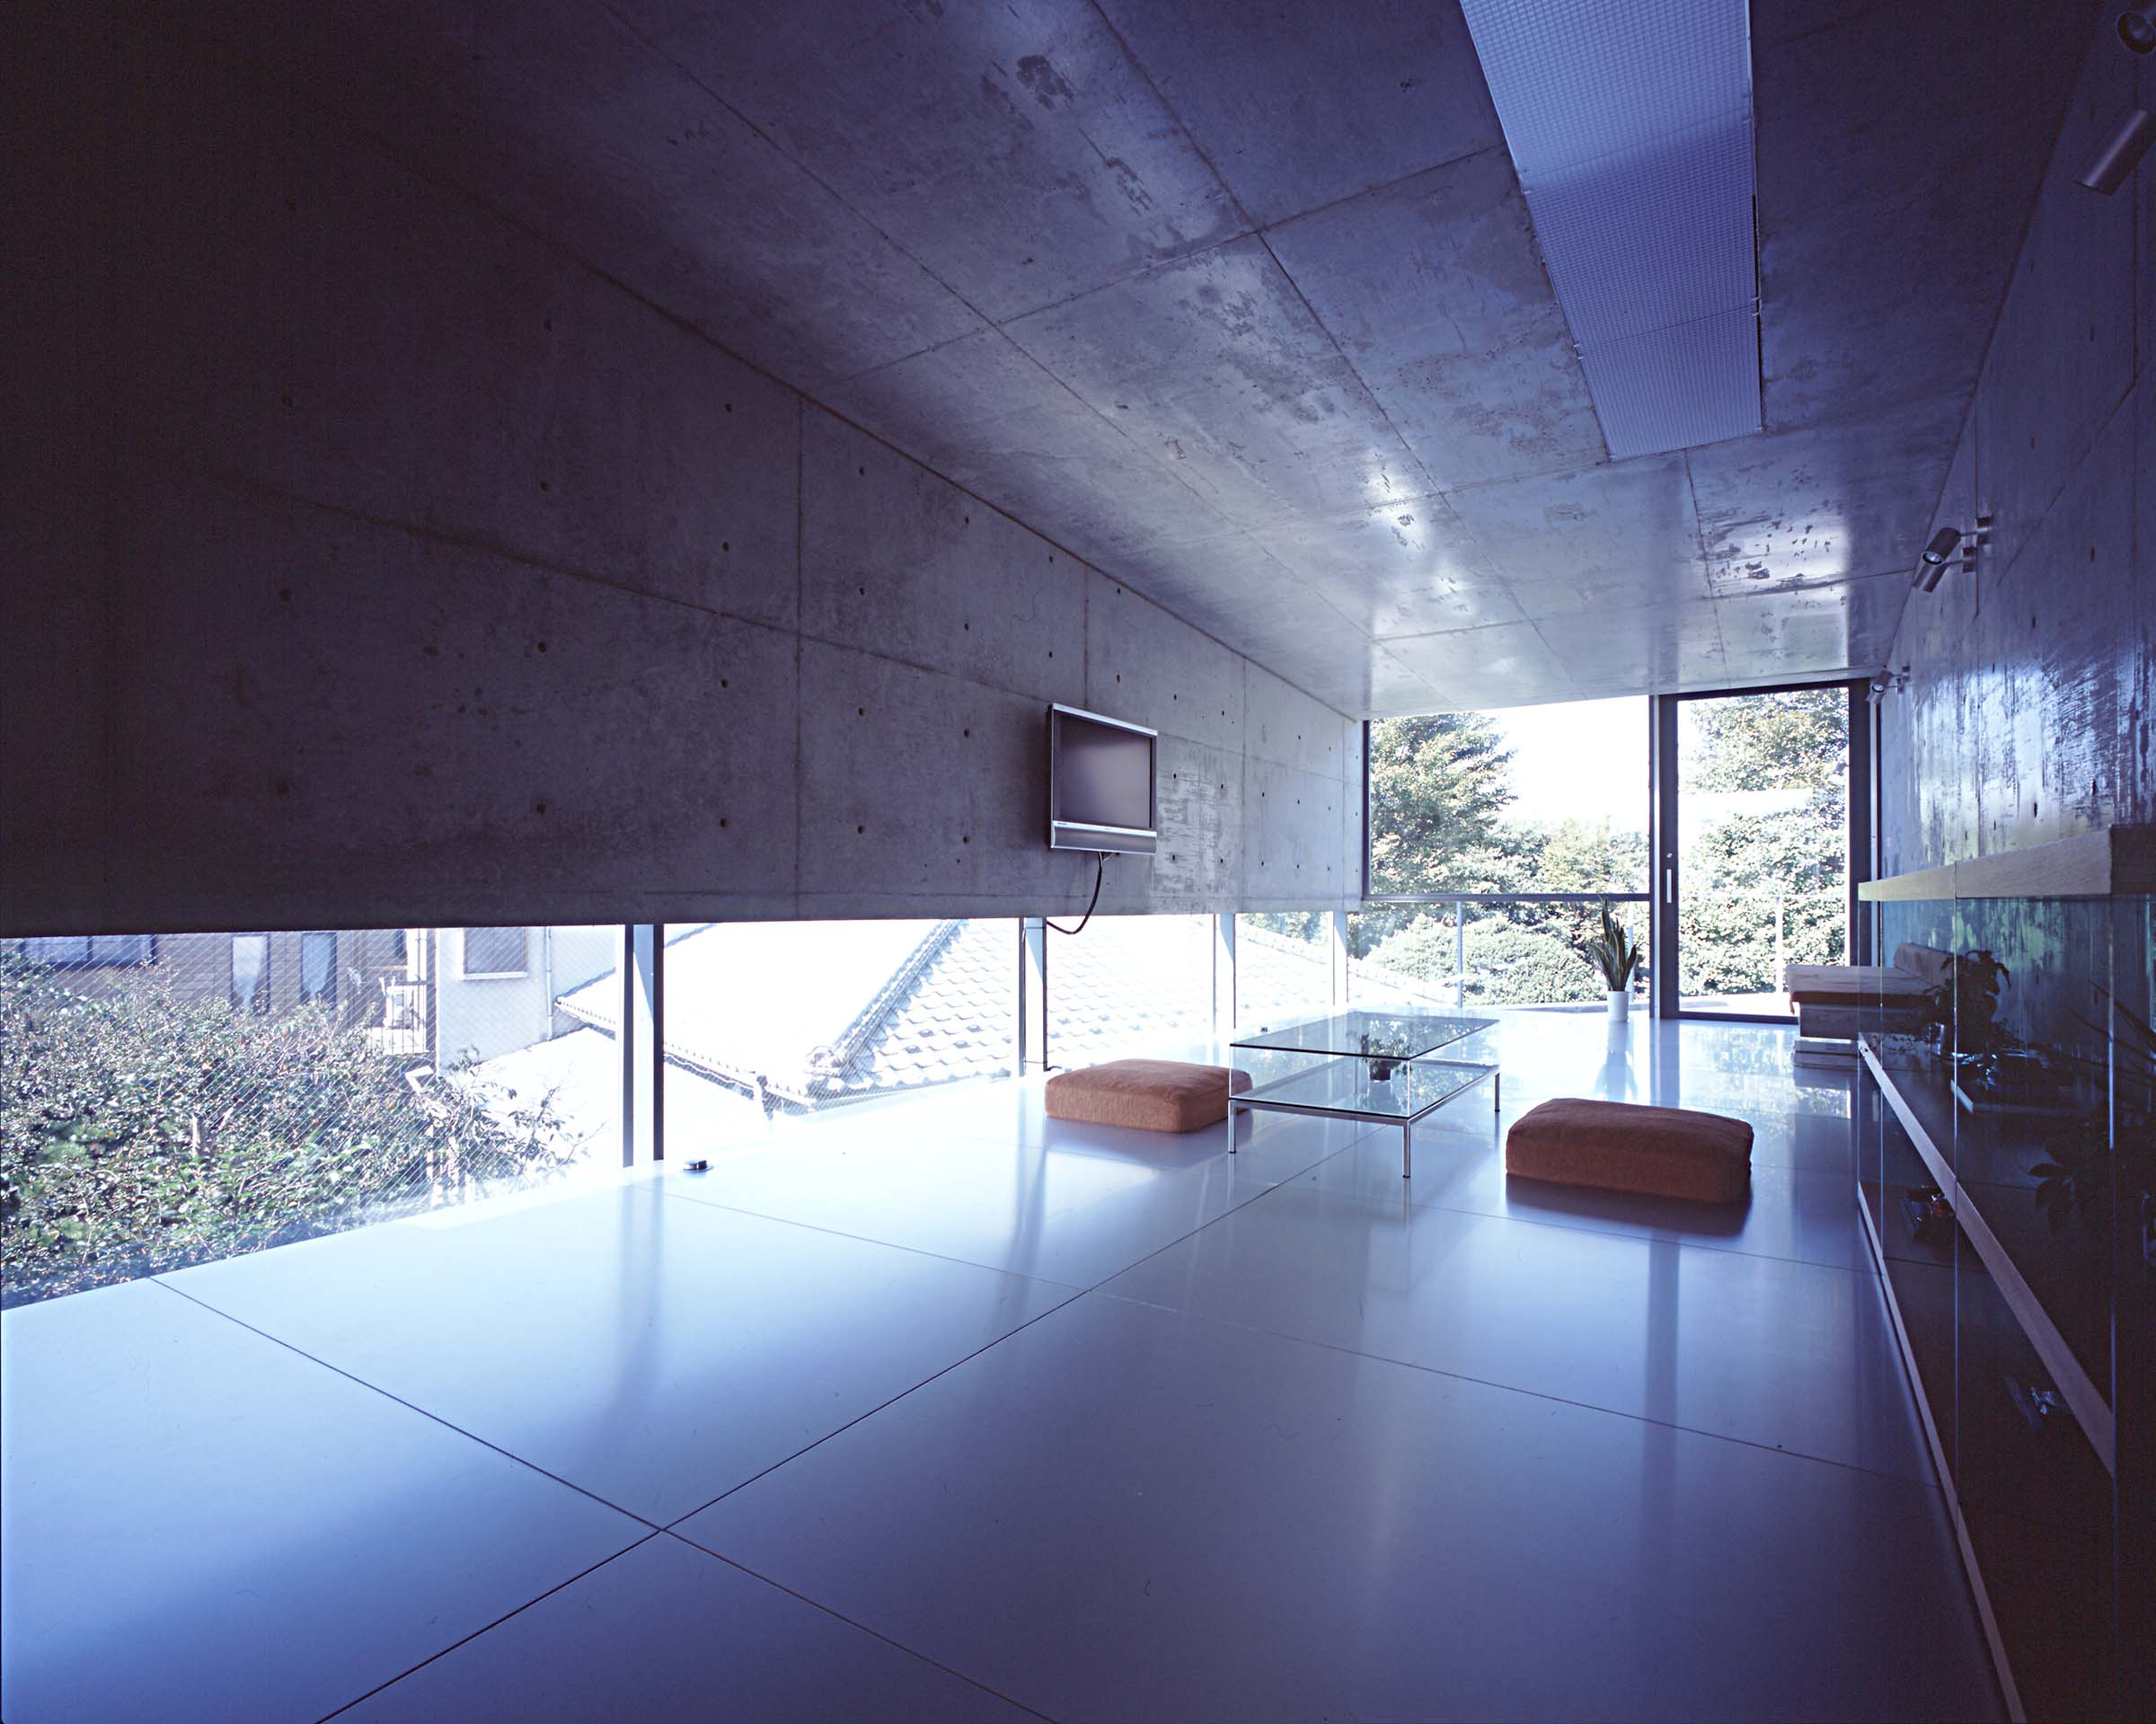 Casa en Futamatagawa - Kiyonobu Nakagame Architects and Associates